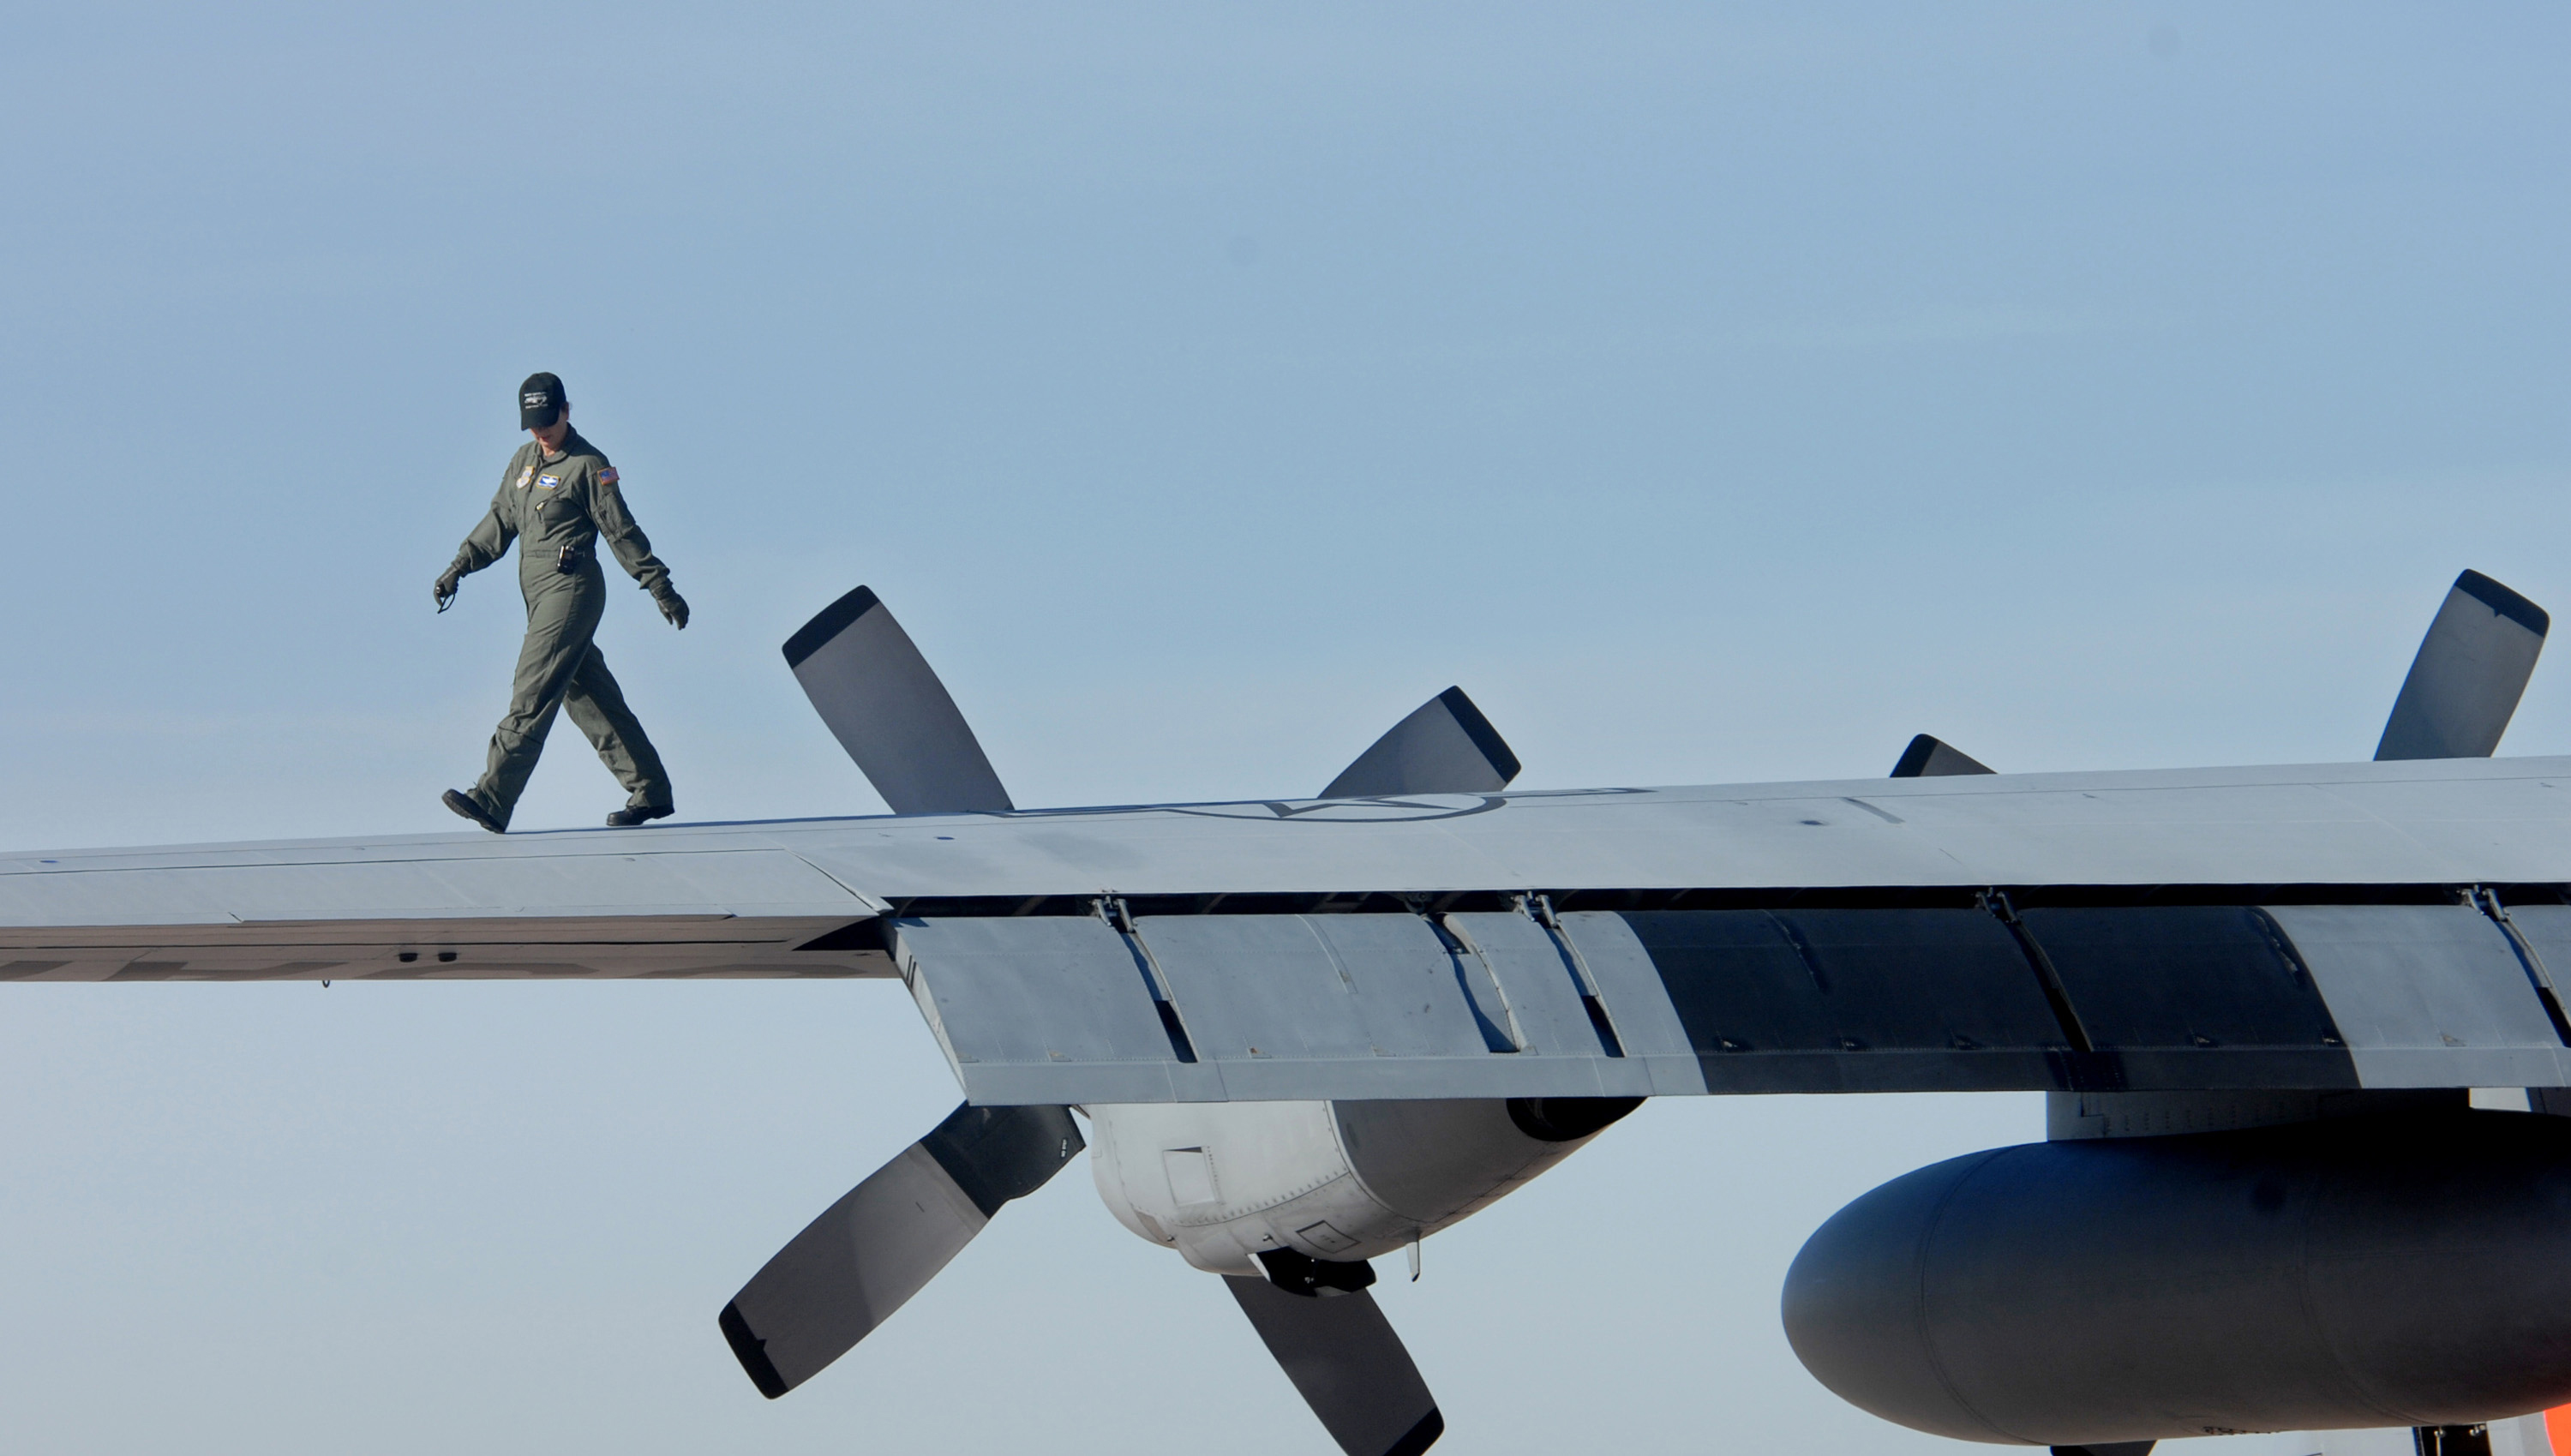 File:A U.S. Air Force crewman from the 153rd Air Wing Air National Guard,